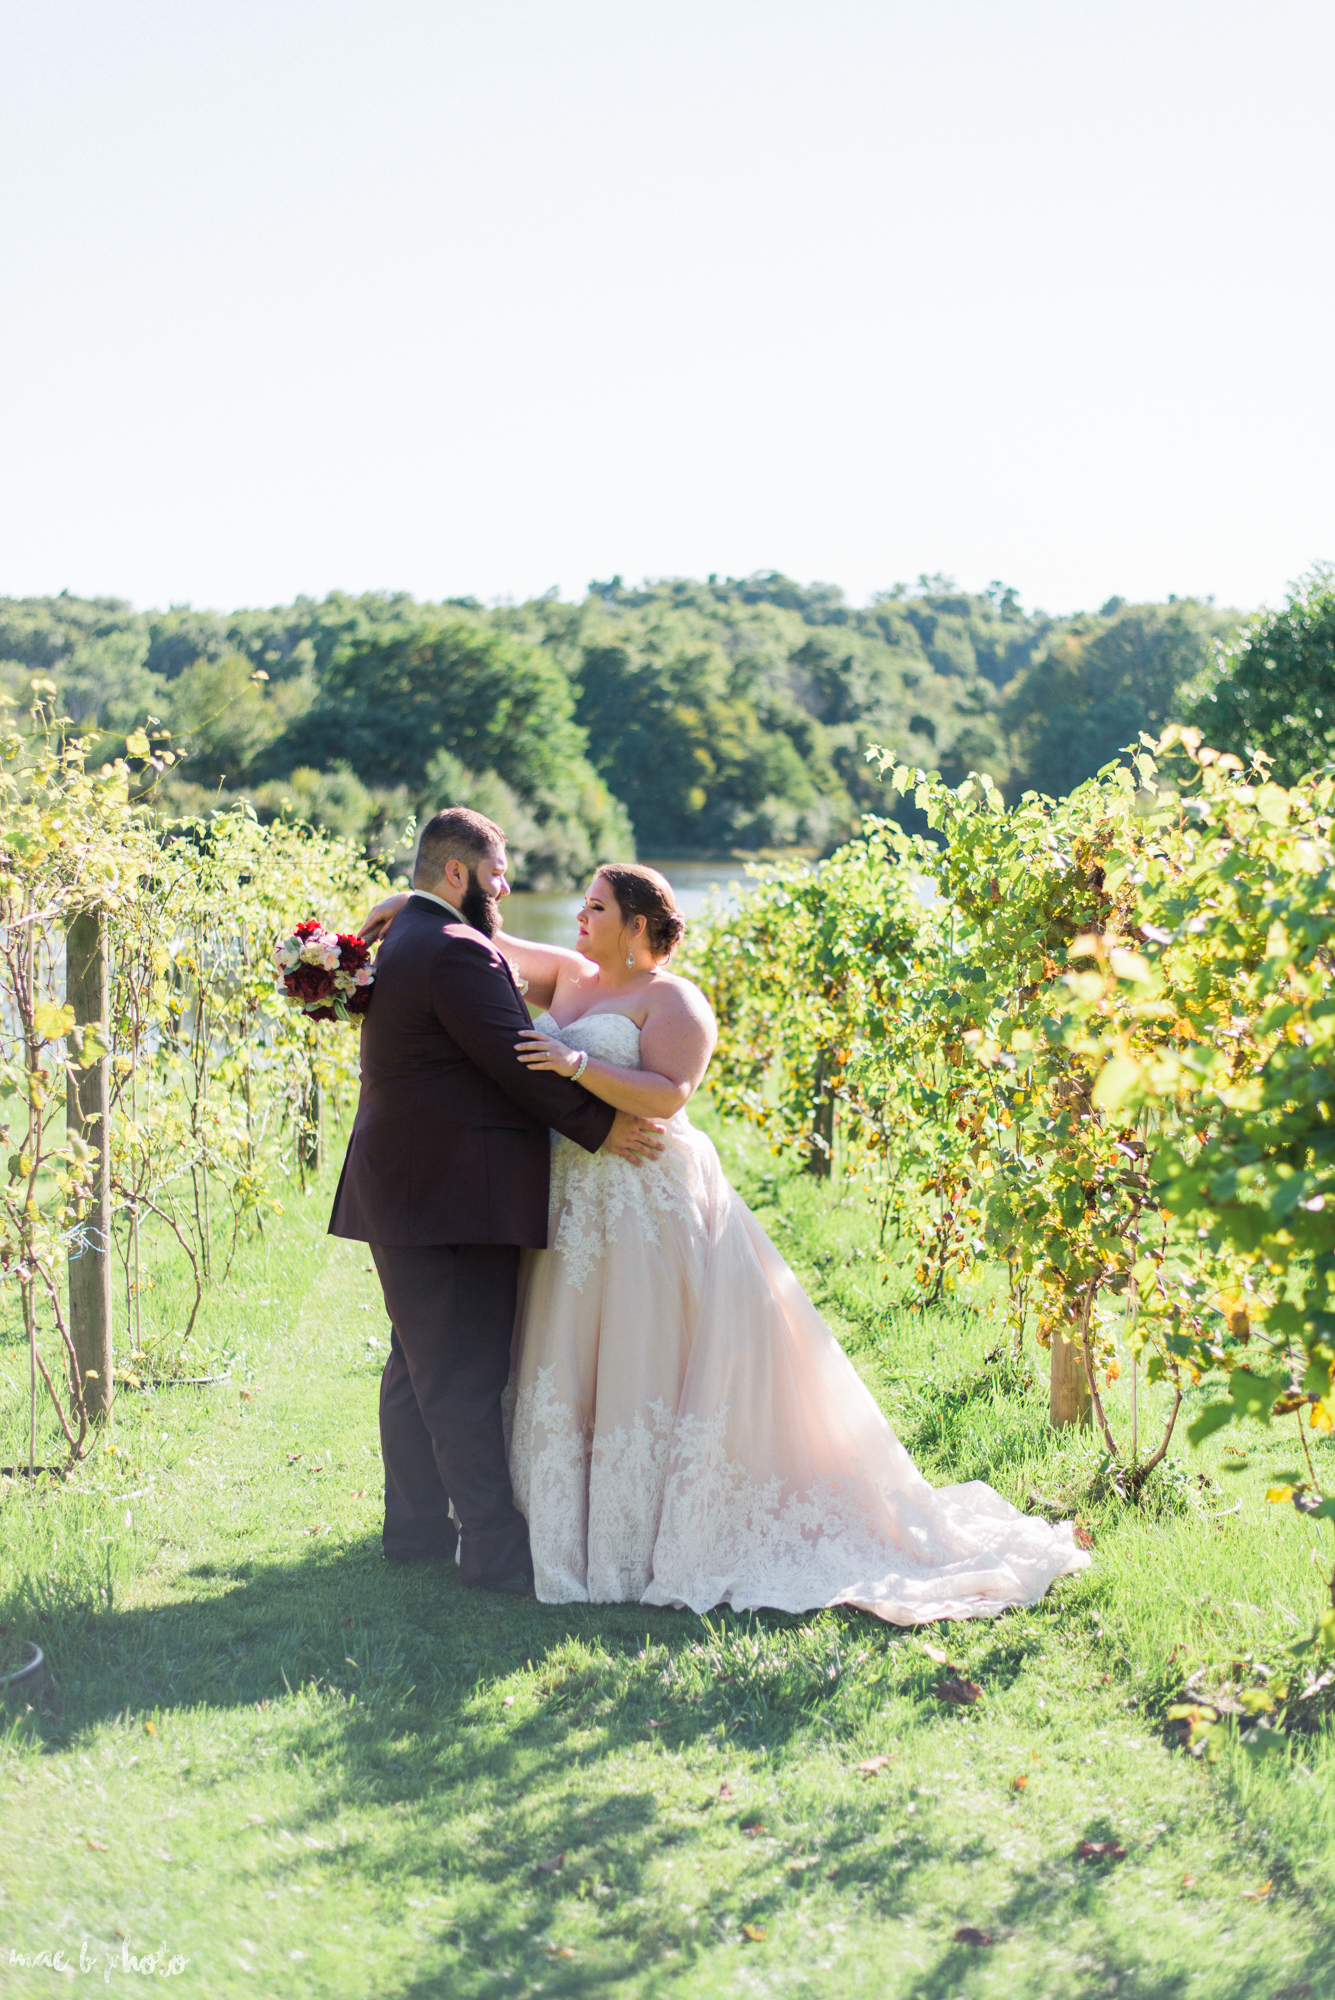 Amber & Kyle's Rustic Barn Wedding at SNPJ in Enon Valley, PA by Mae B Photo-65.jpg